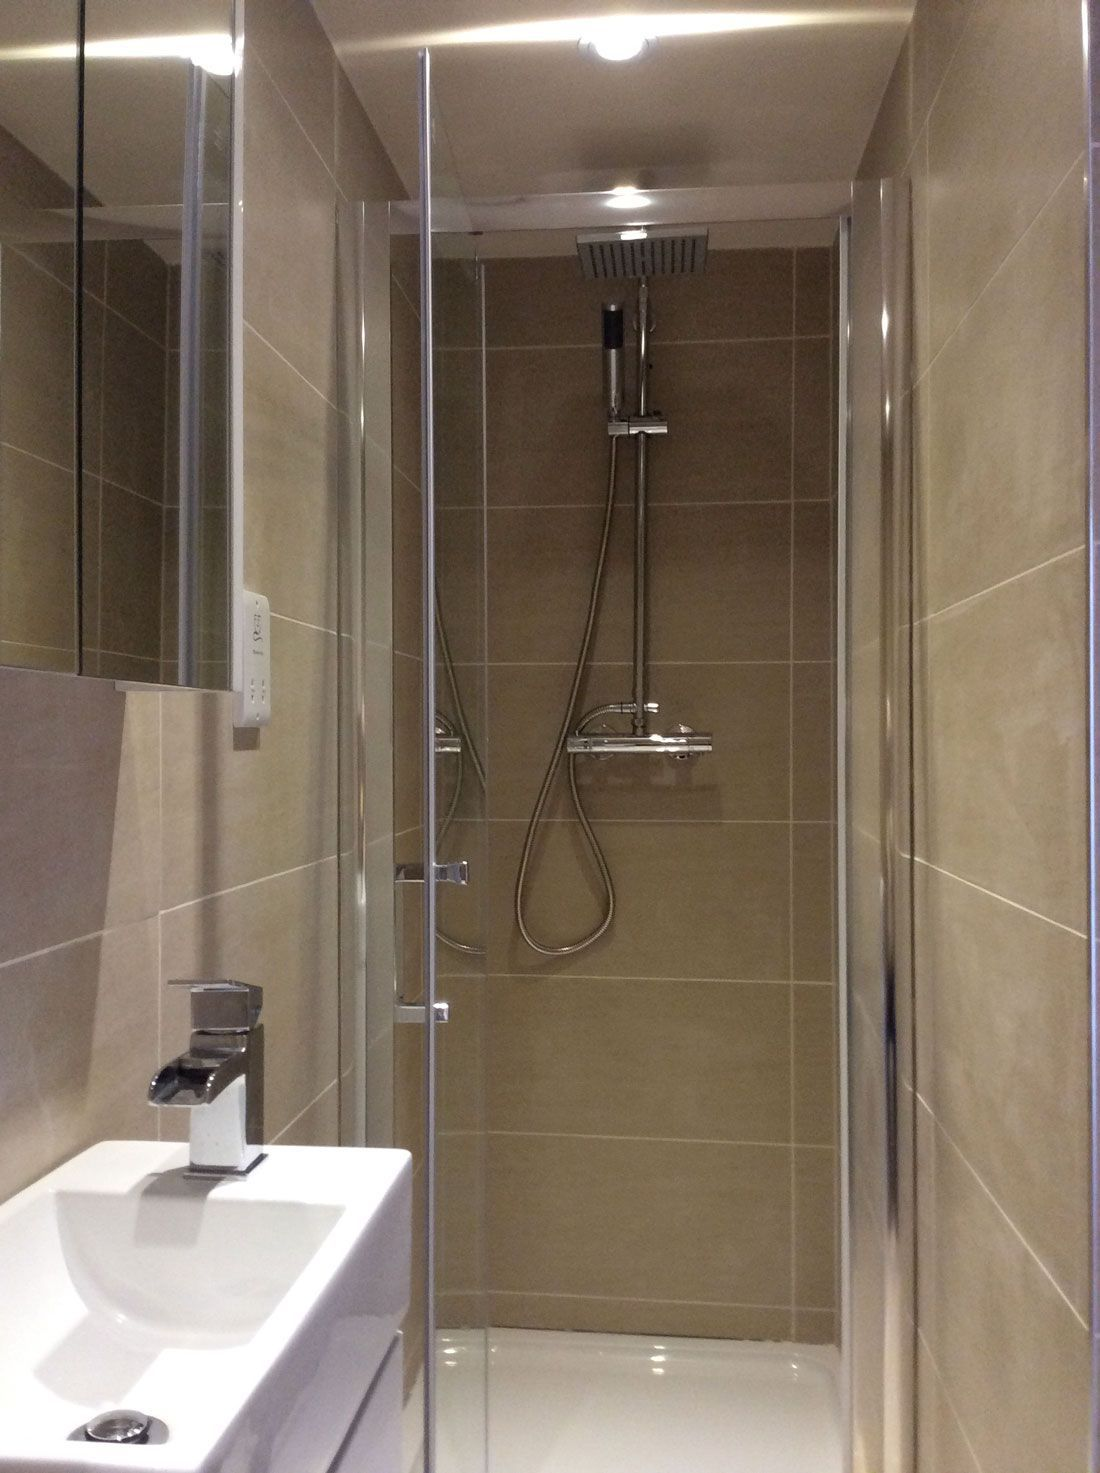 Image Result For Smallest Ensuite Small Shower Room Ensuite Bathroom Designs Small Narrow Bathroom Ensuite bathroom design ideas